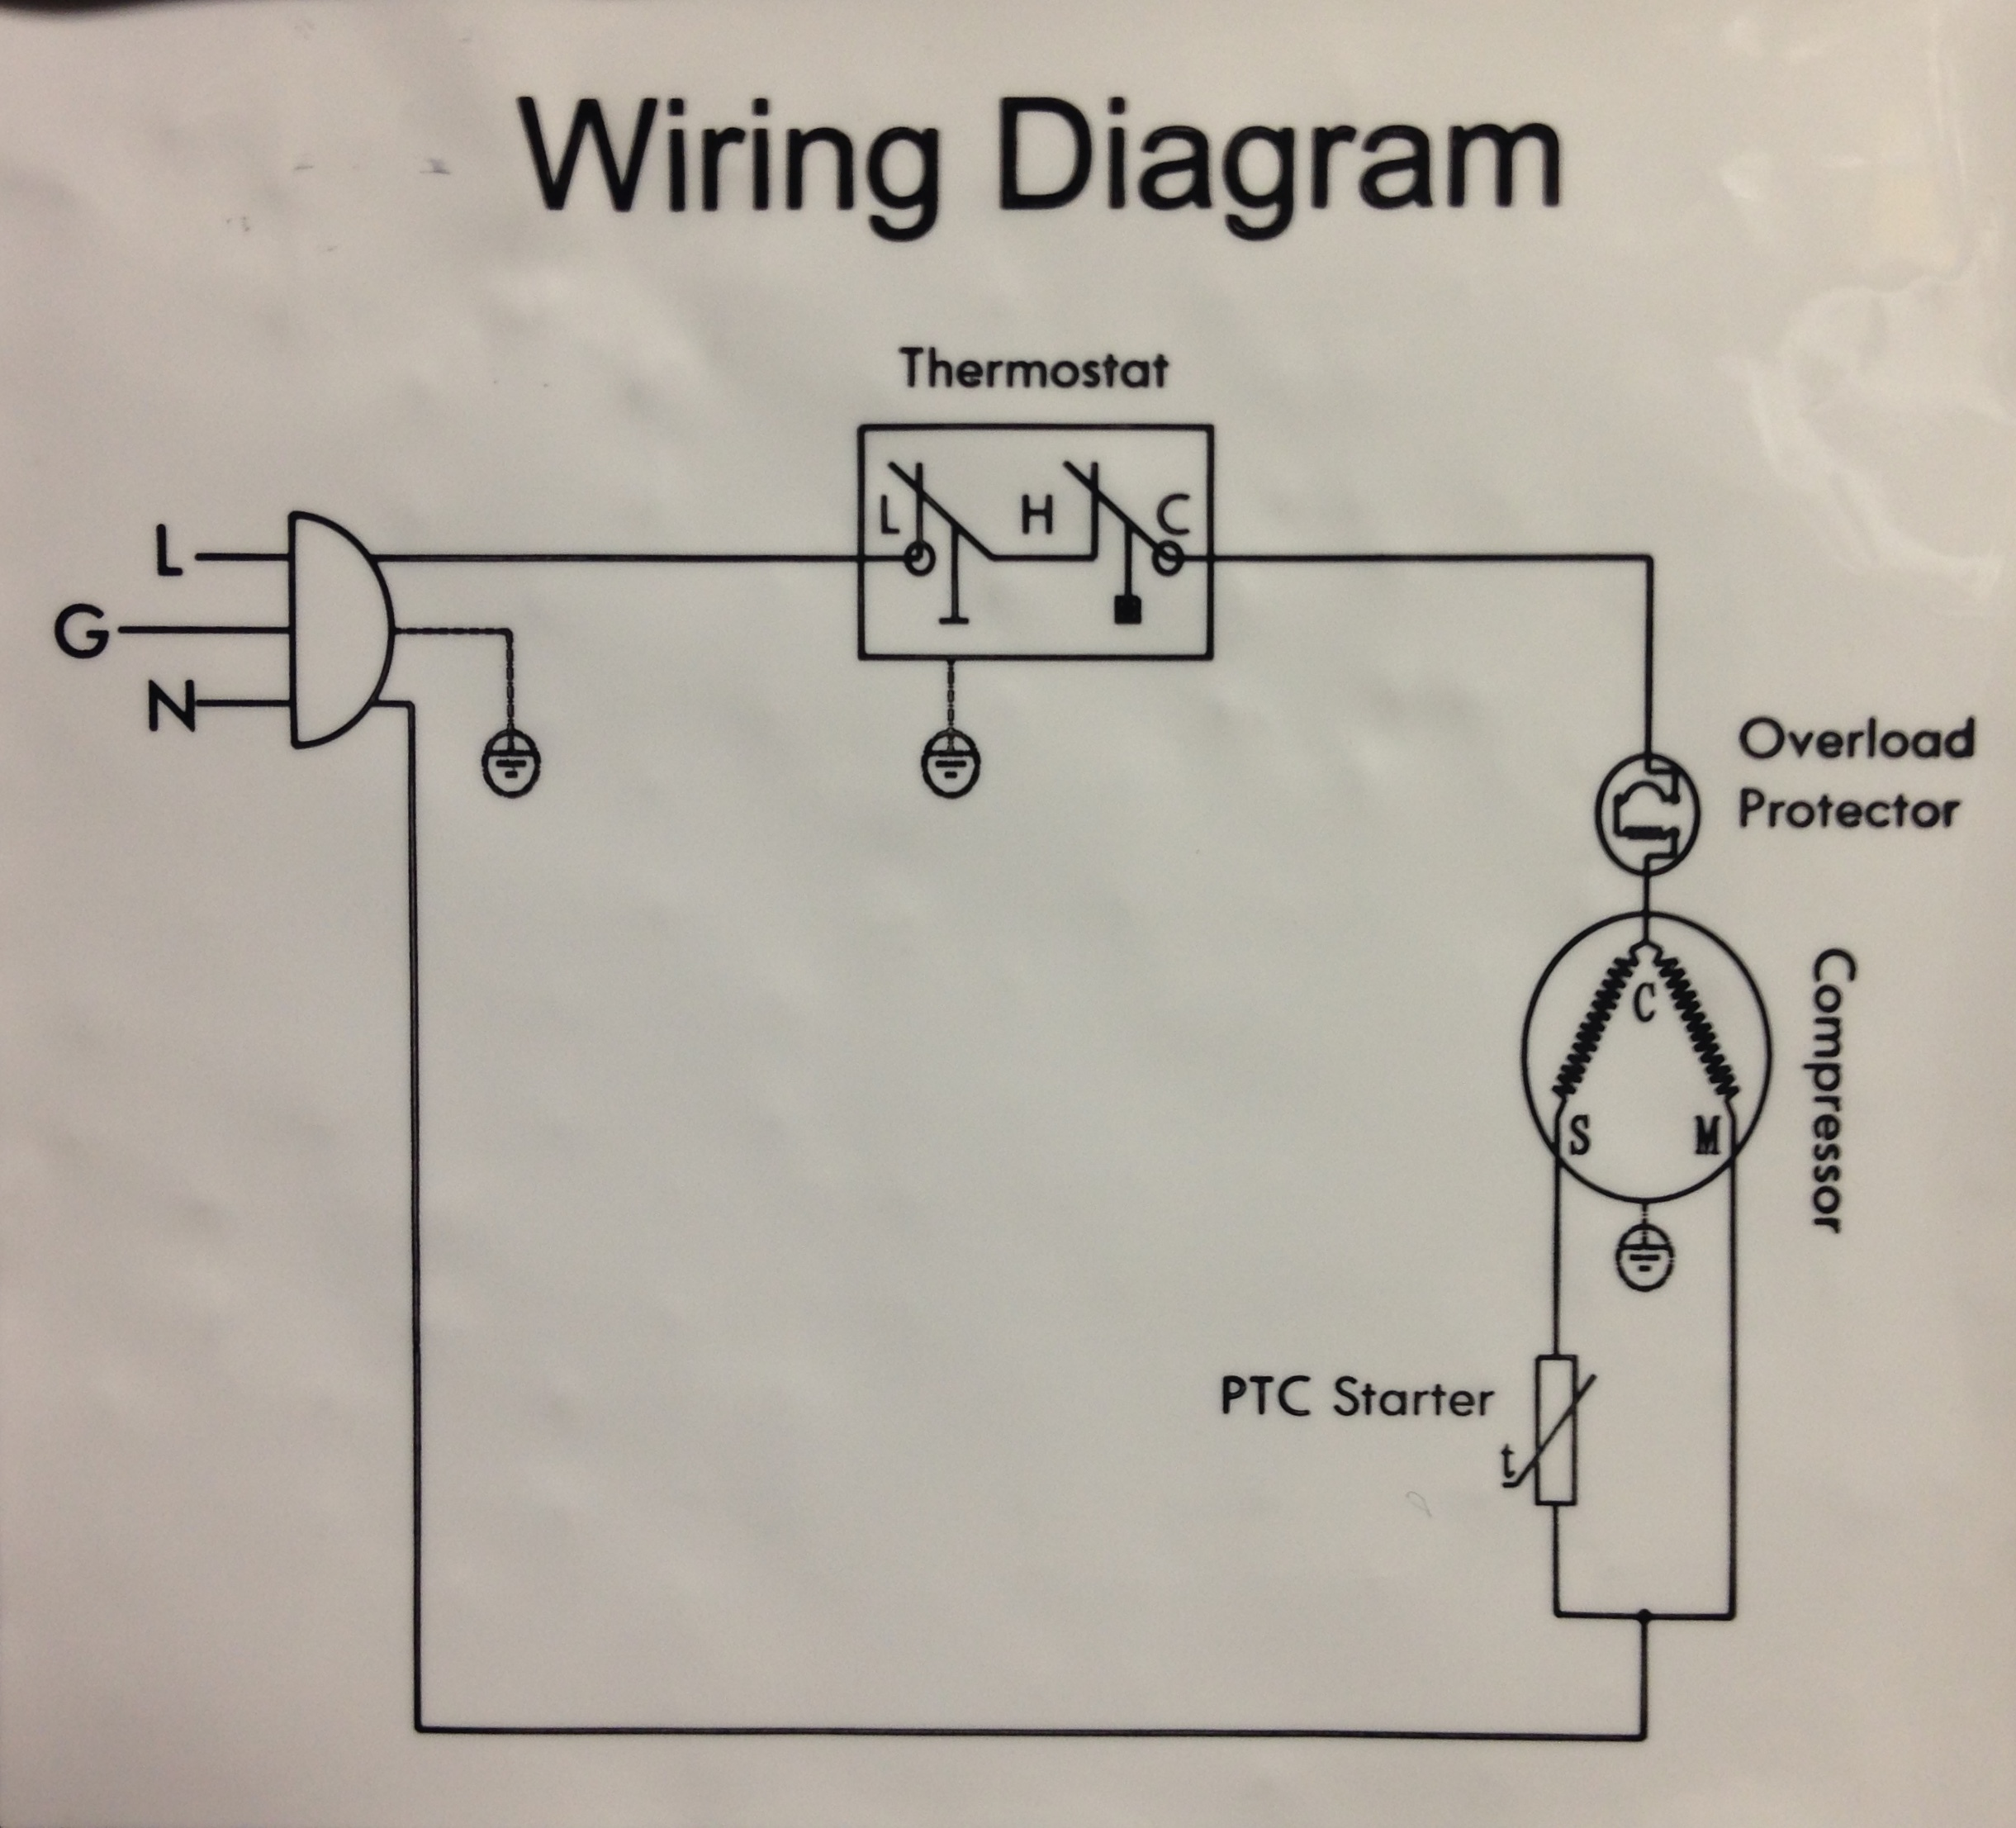 c5986337b4249150884d4e057ccb08b32fe4028e new build electronics newb diagram help fridge build brewpi ptc relay wiring diagram at bayanpartner.co